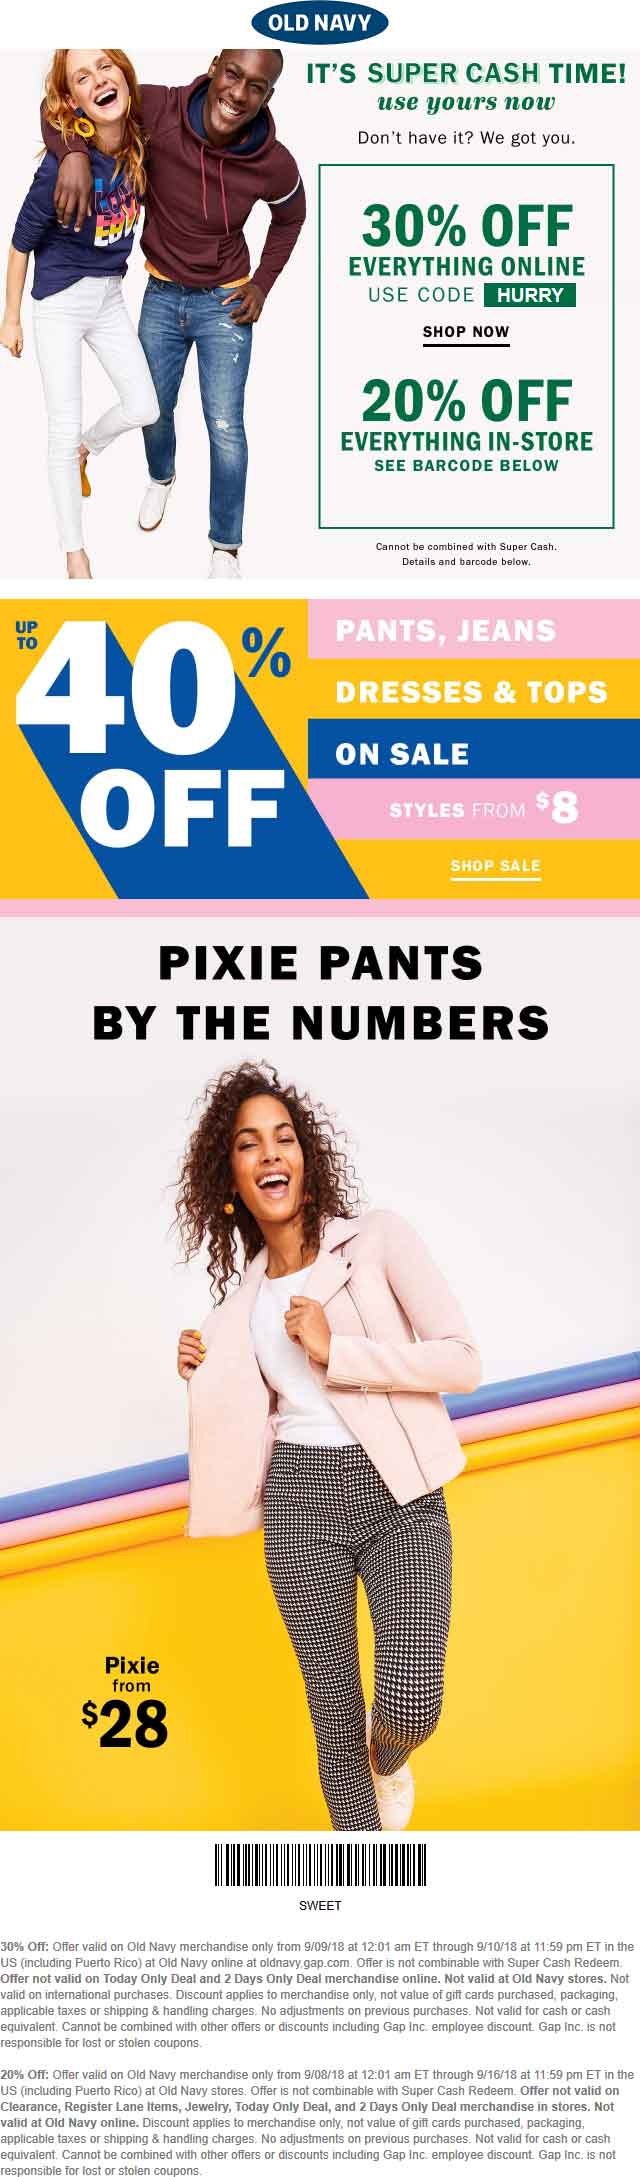 Old Navy Coupon June 2020 20% off everything at Old Navy, or 30% online via promo code HURRY